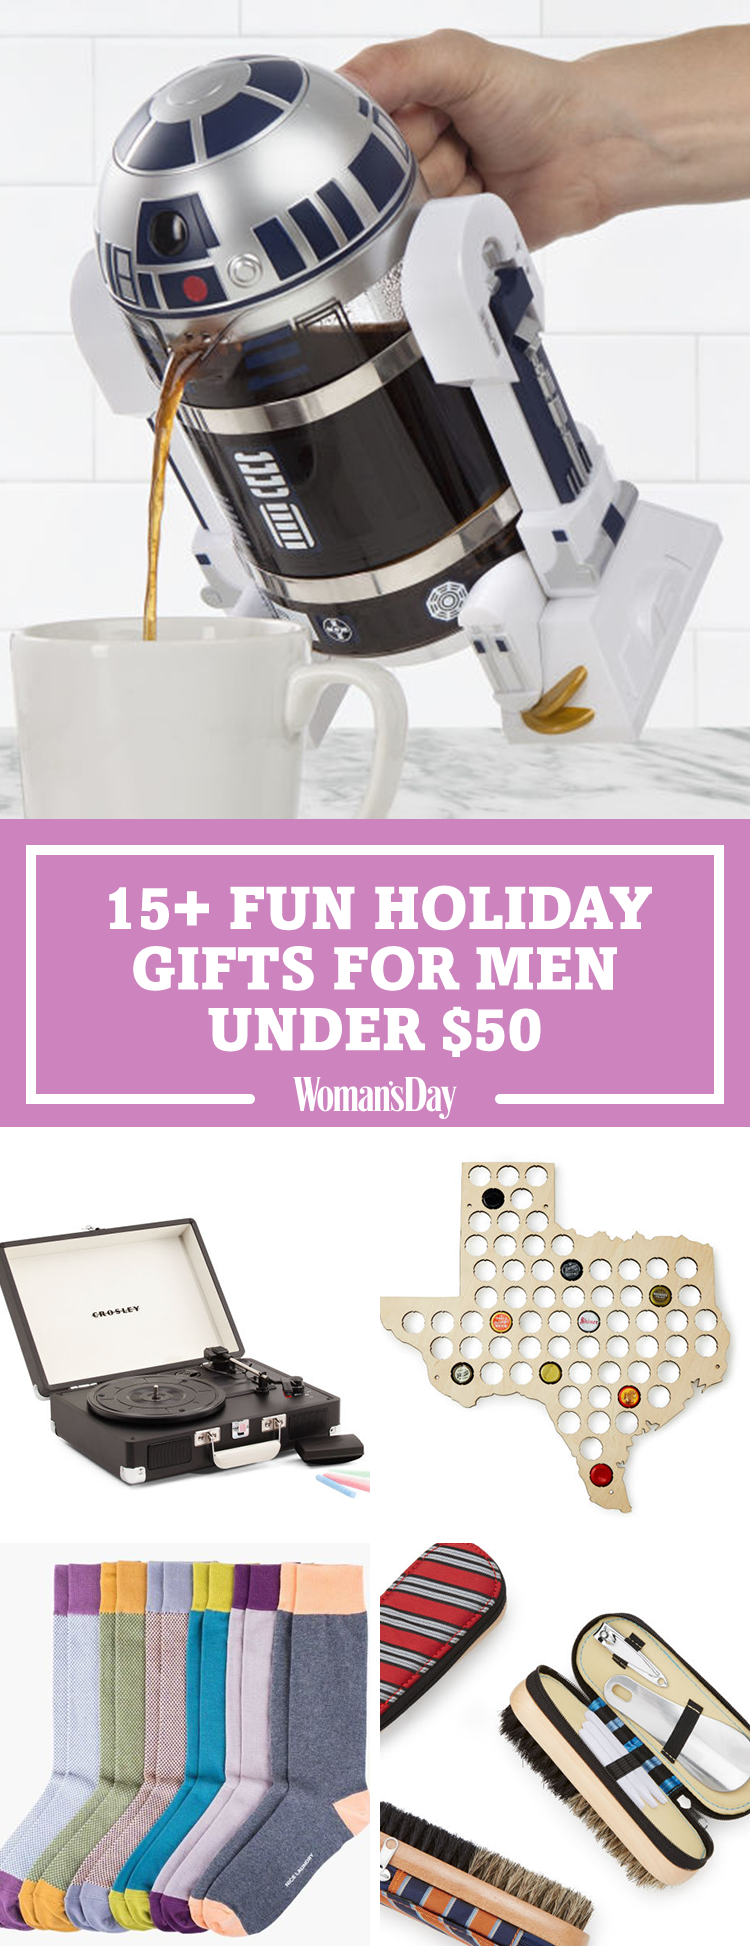 20 Best Christmas Gifts for Men - Great Gift Ideas for Guys Who ...